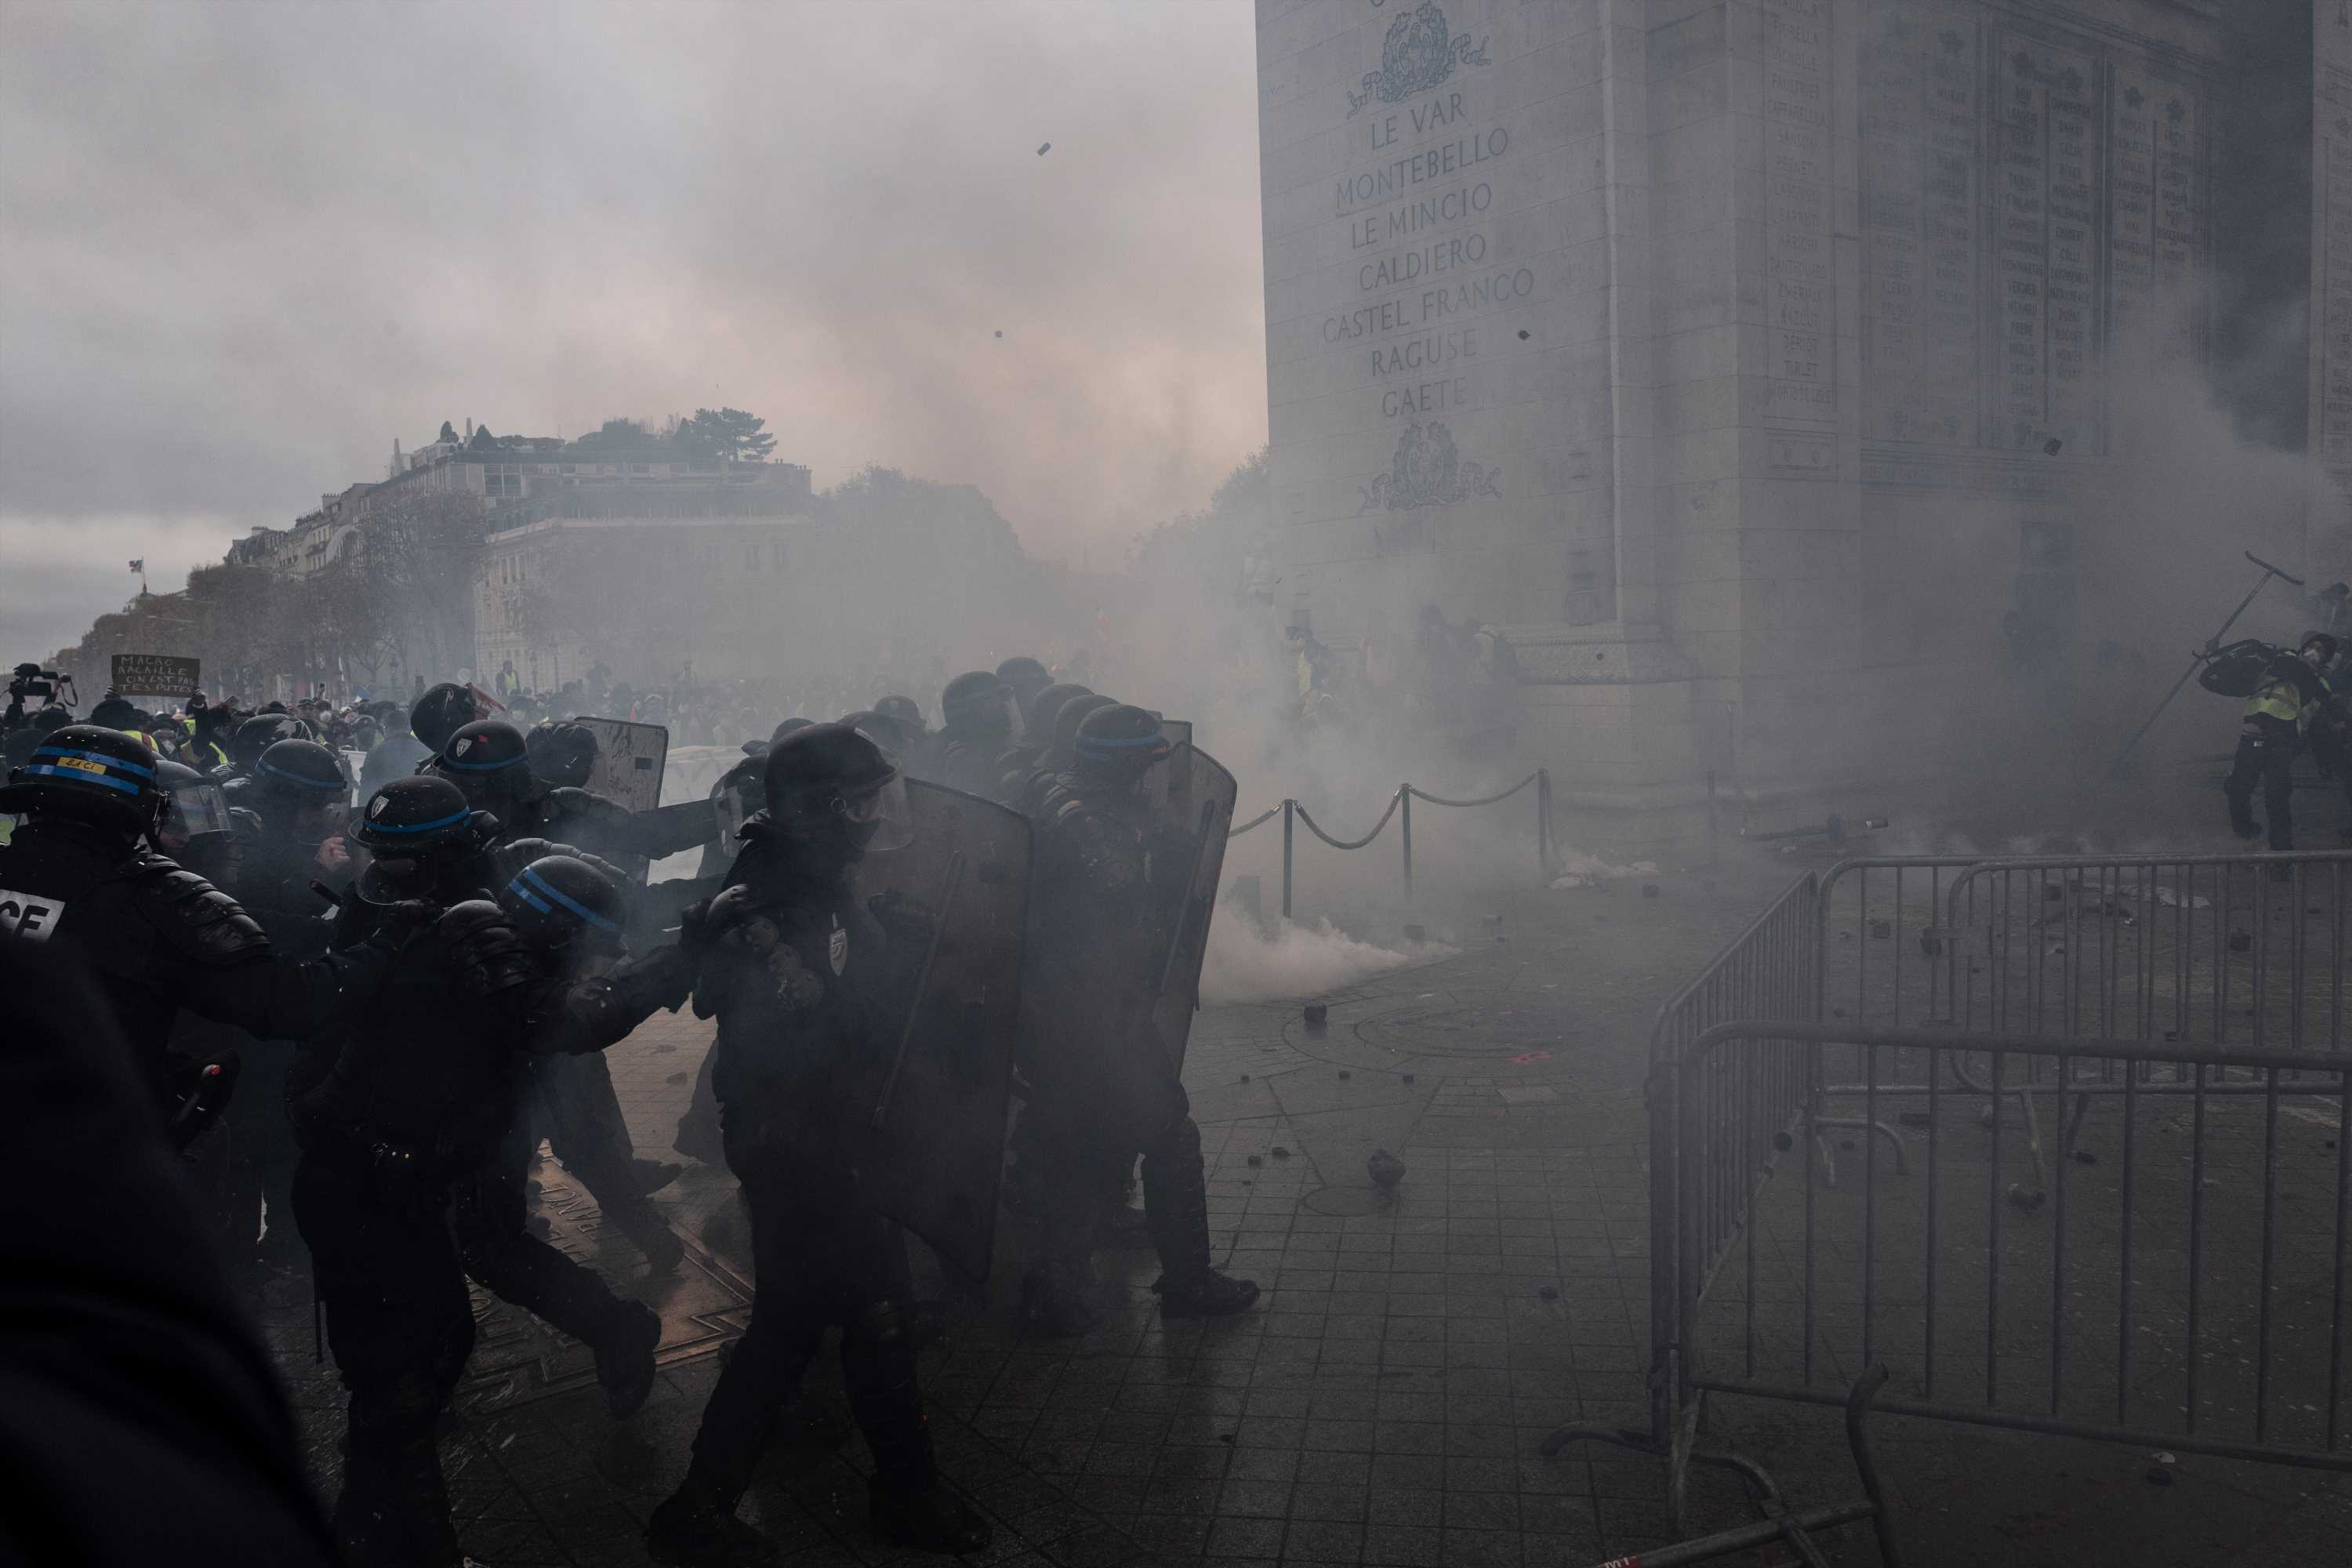 133 injured and 412 arrested amid Paris riot